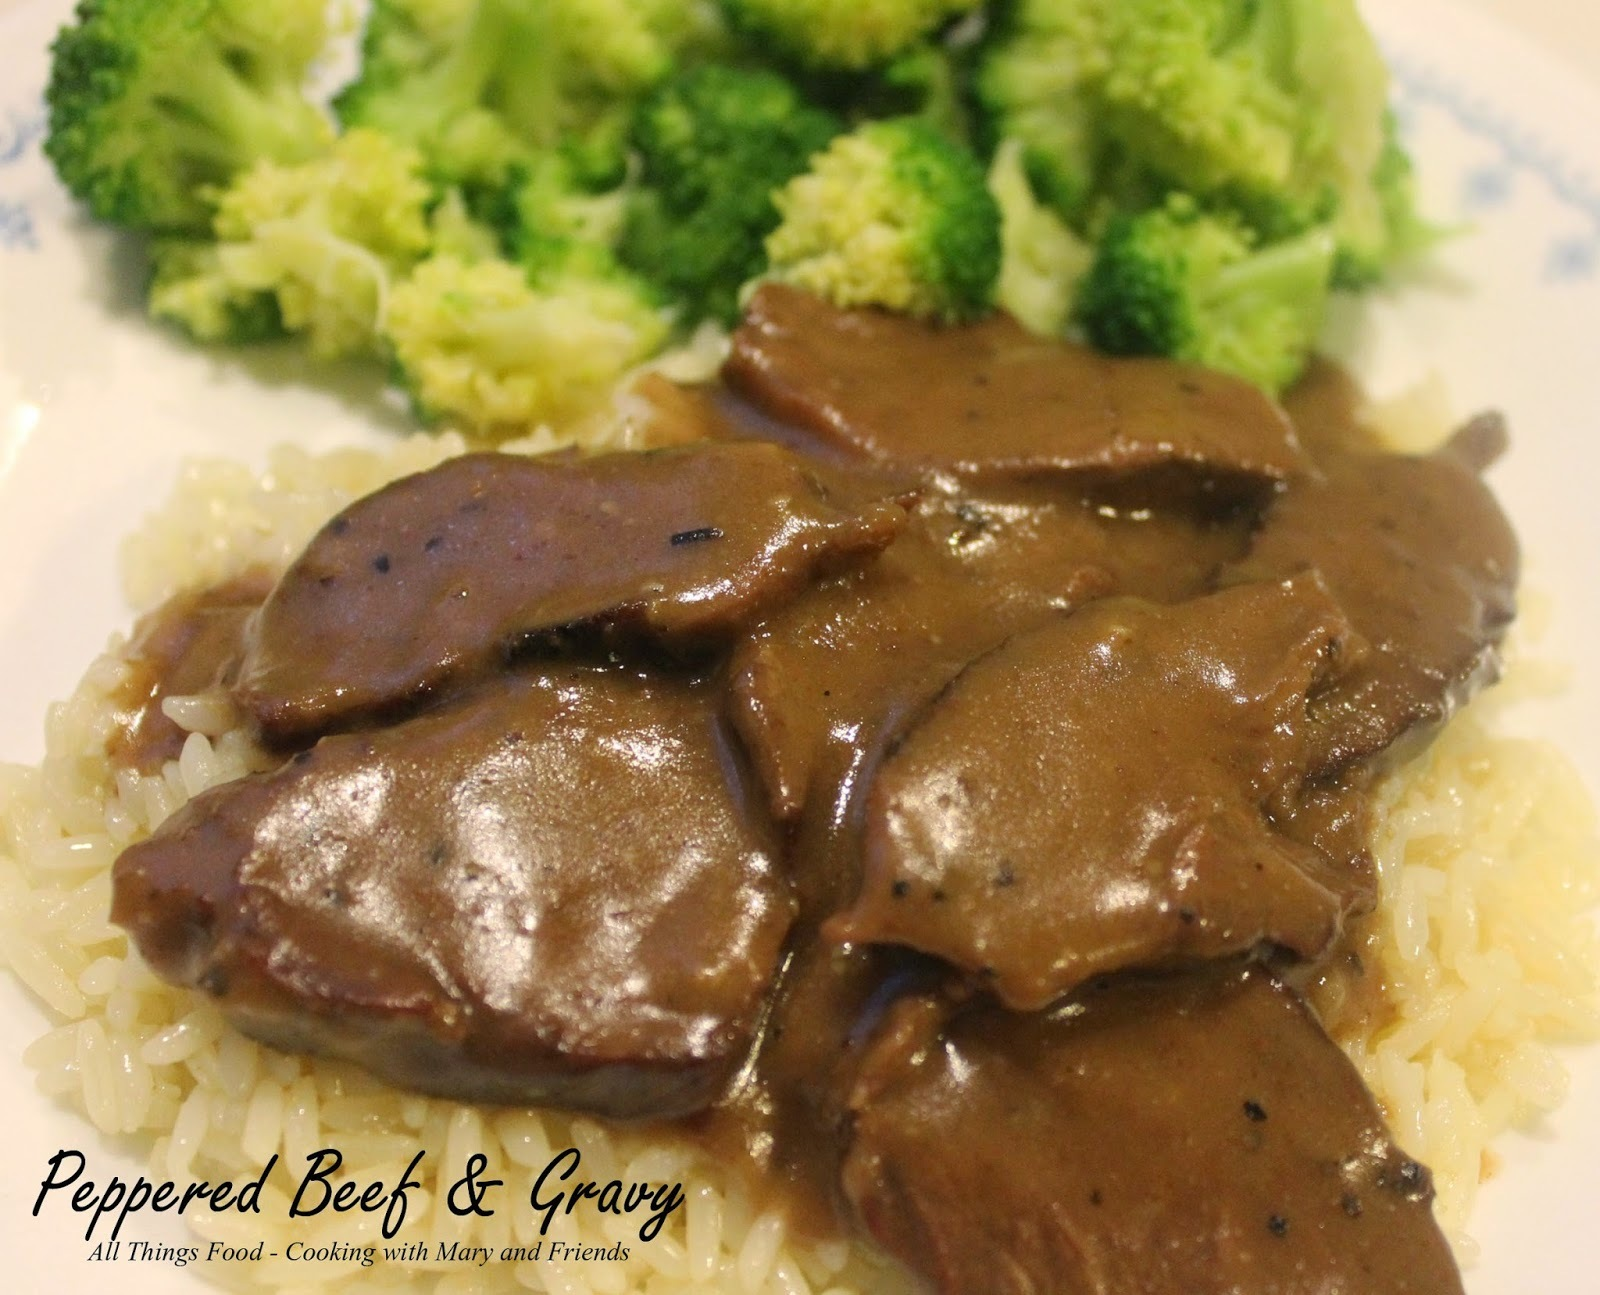 Peppered Beef & Gravy